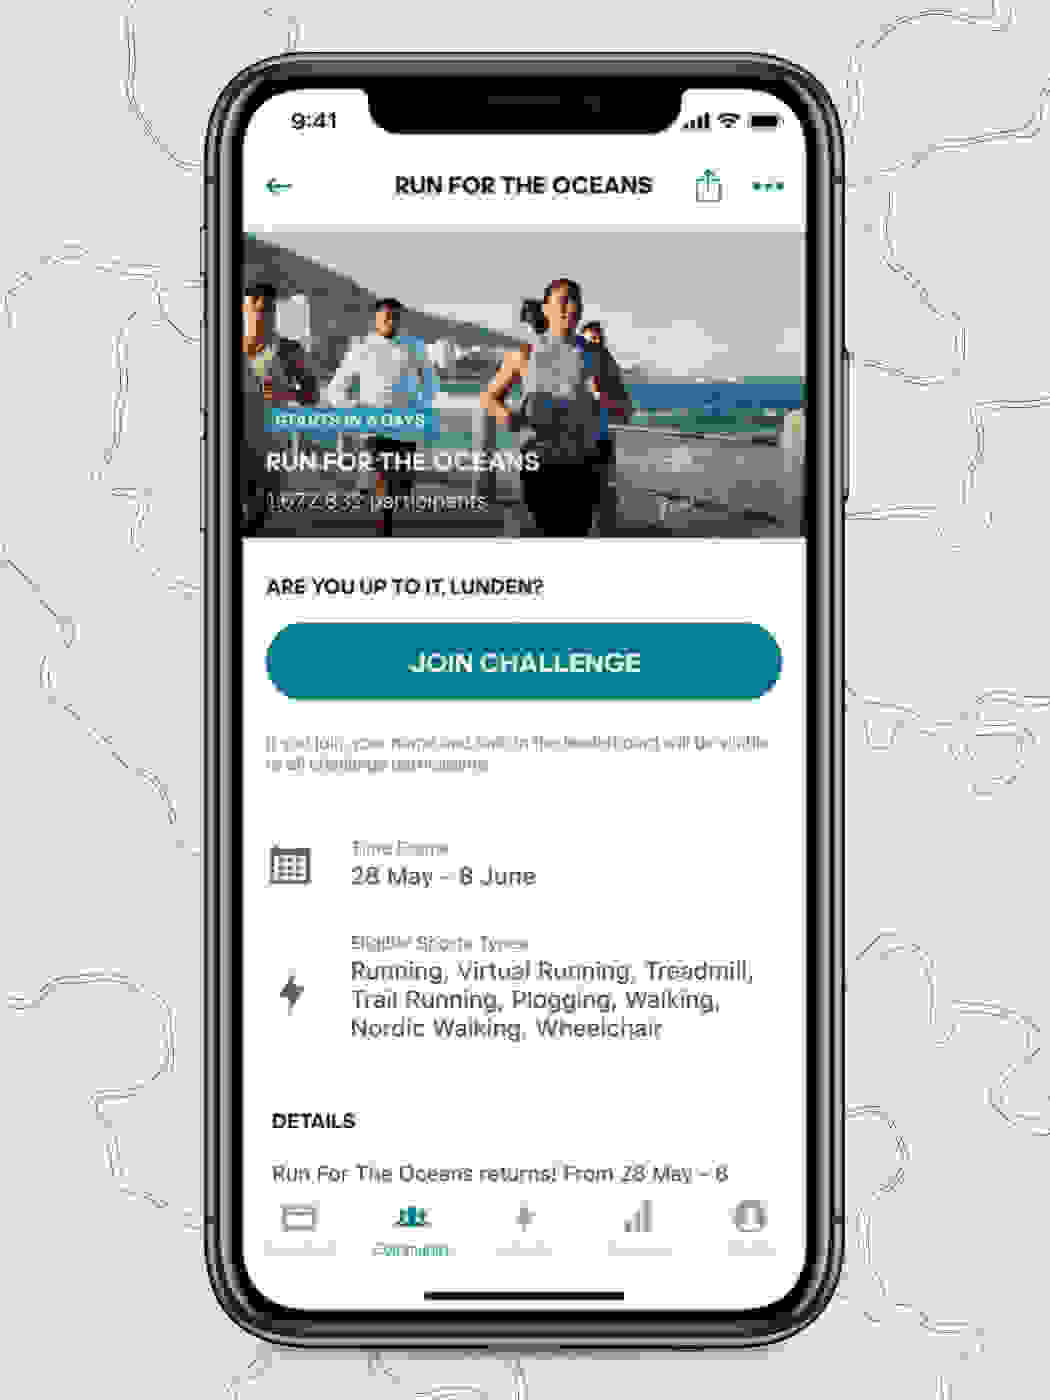 Mobile device showing the adidas Running app with Run For The Ocean challenge on screen